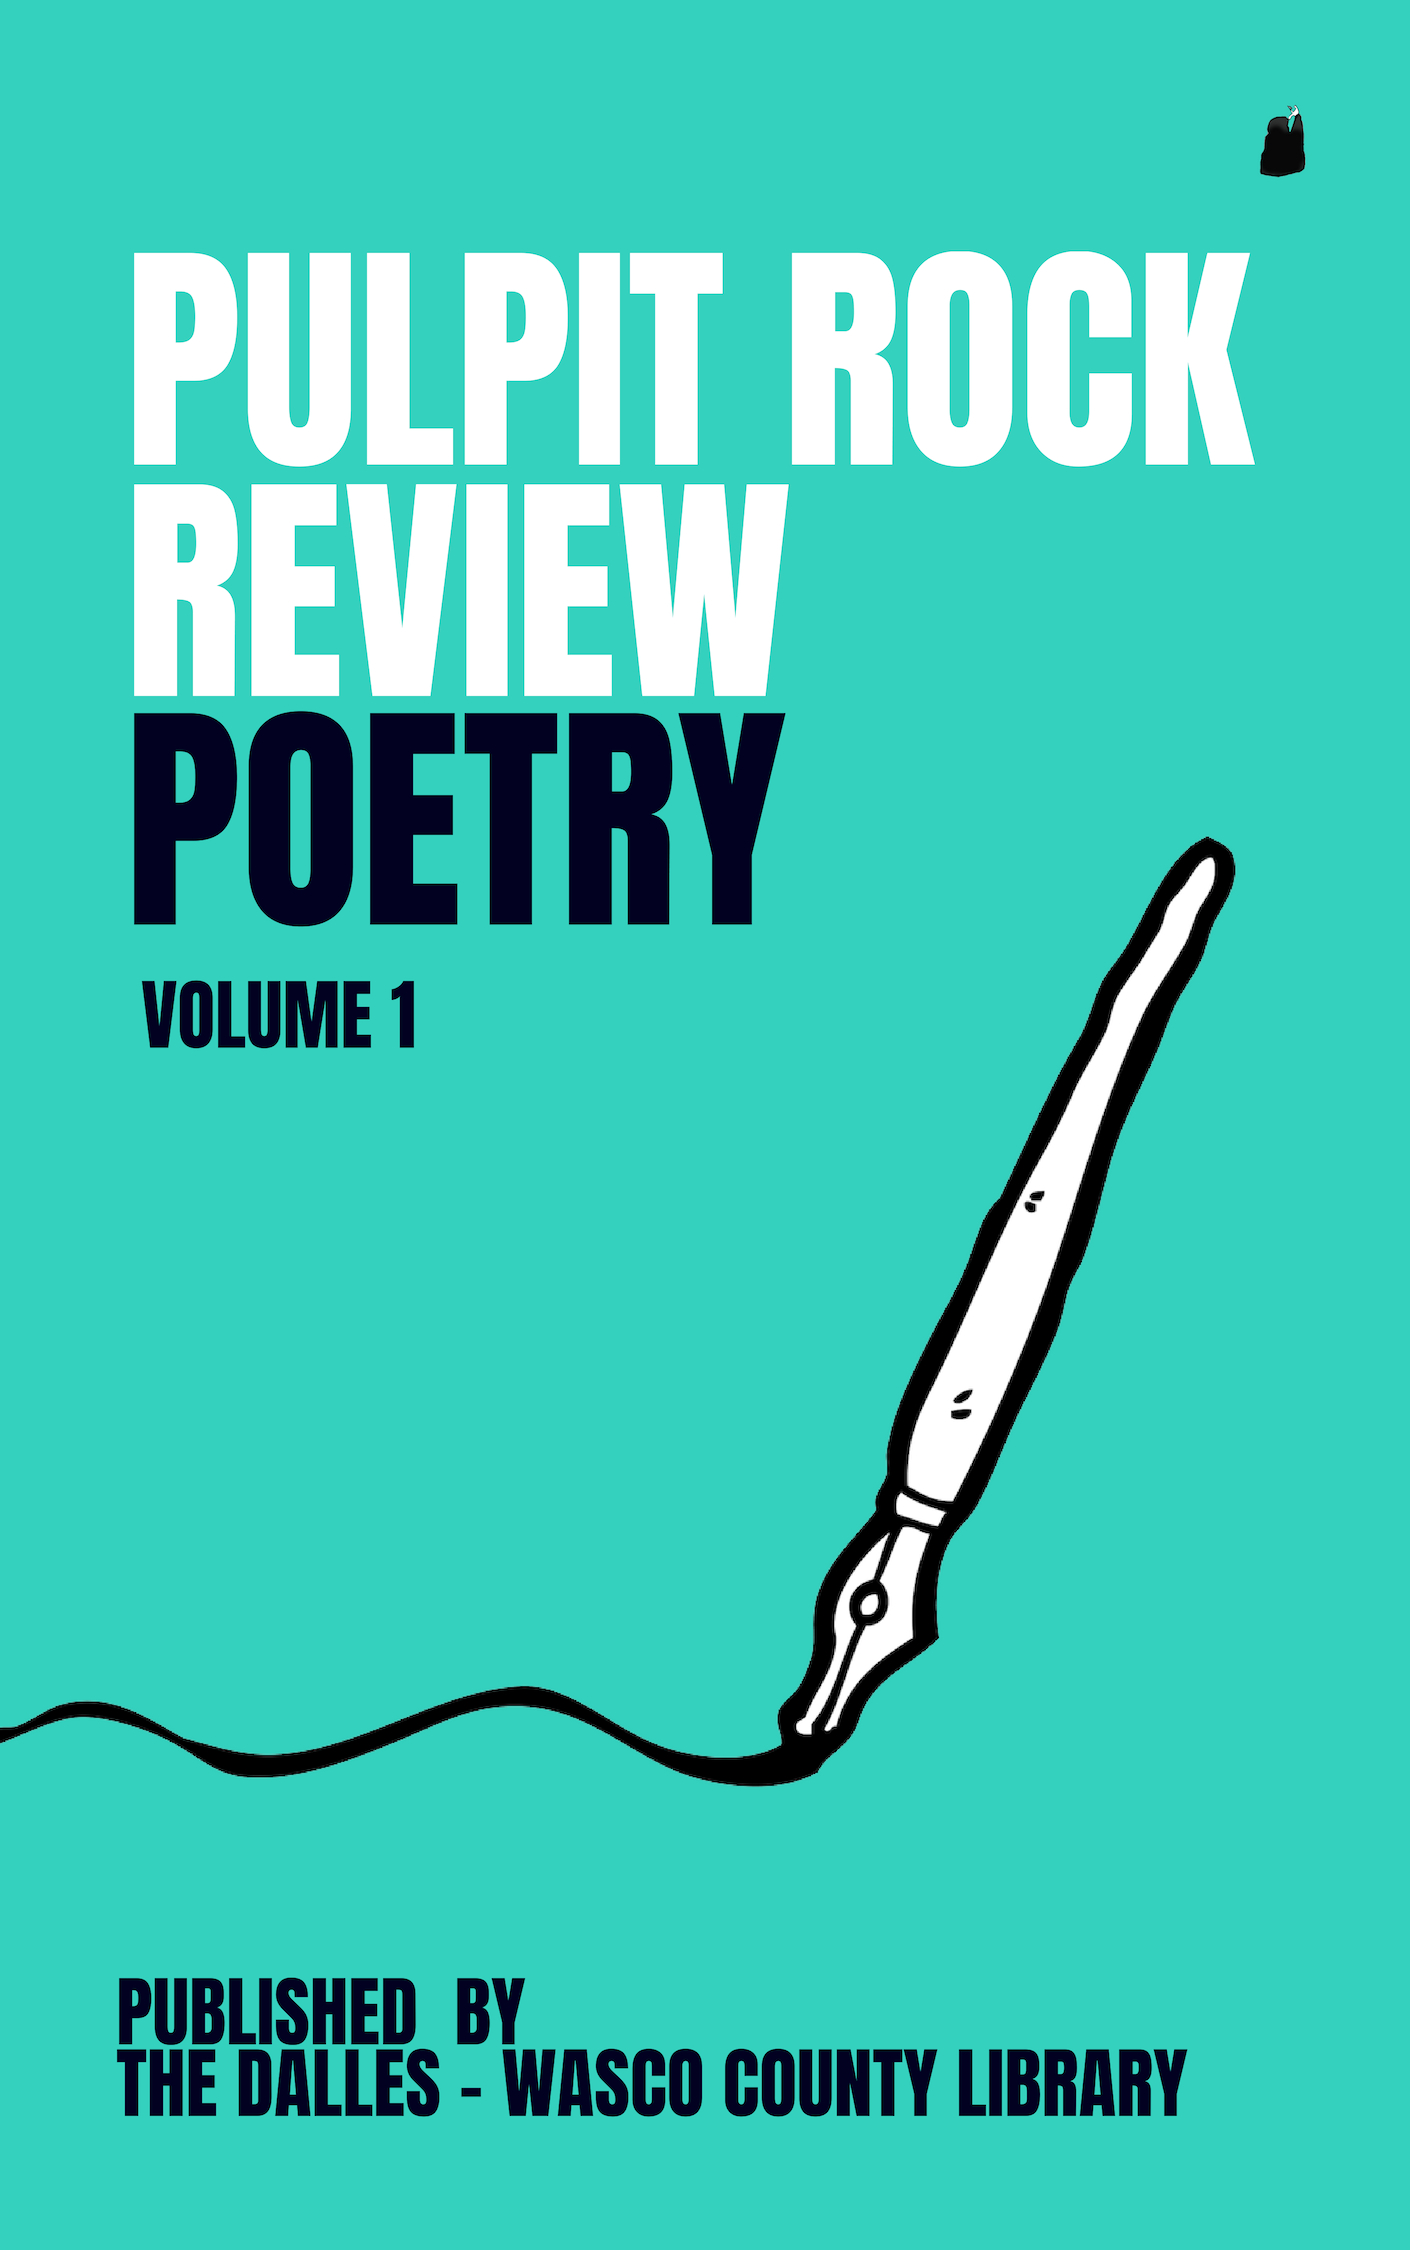 Pulpit Rock Review Poetry Vol 1 - is now AVAILABLEBuy your copy hereorput the library copy on hold here.